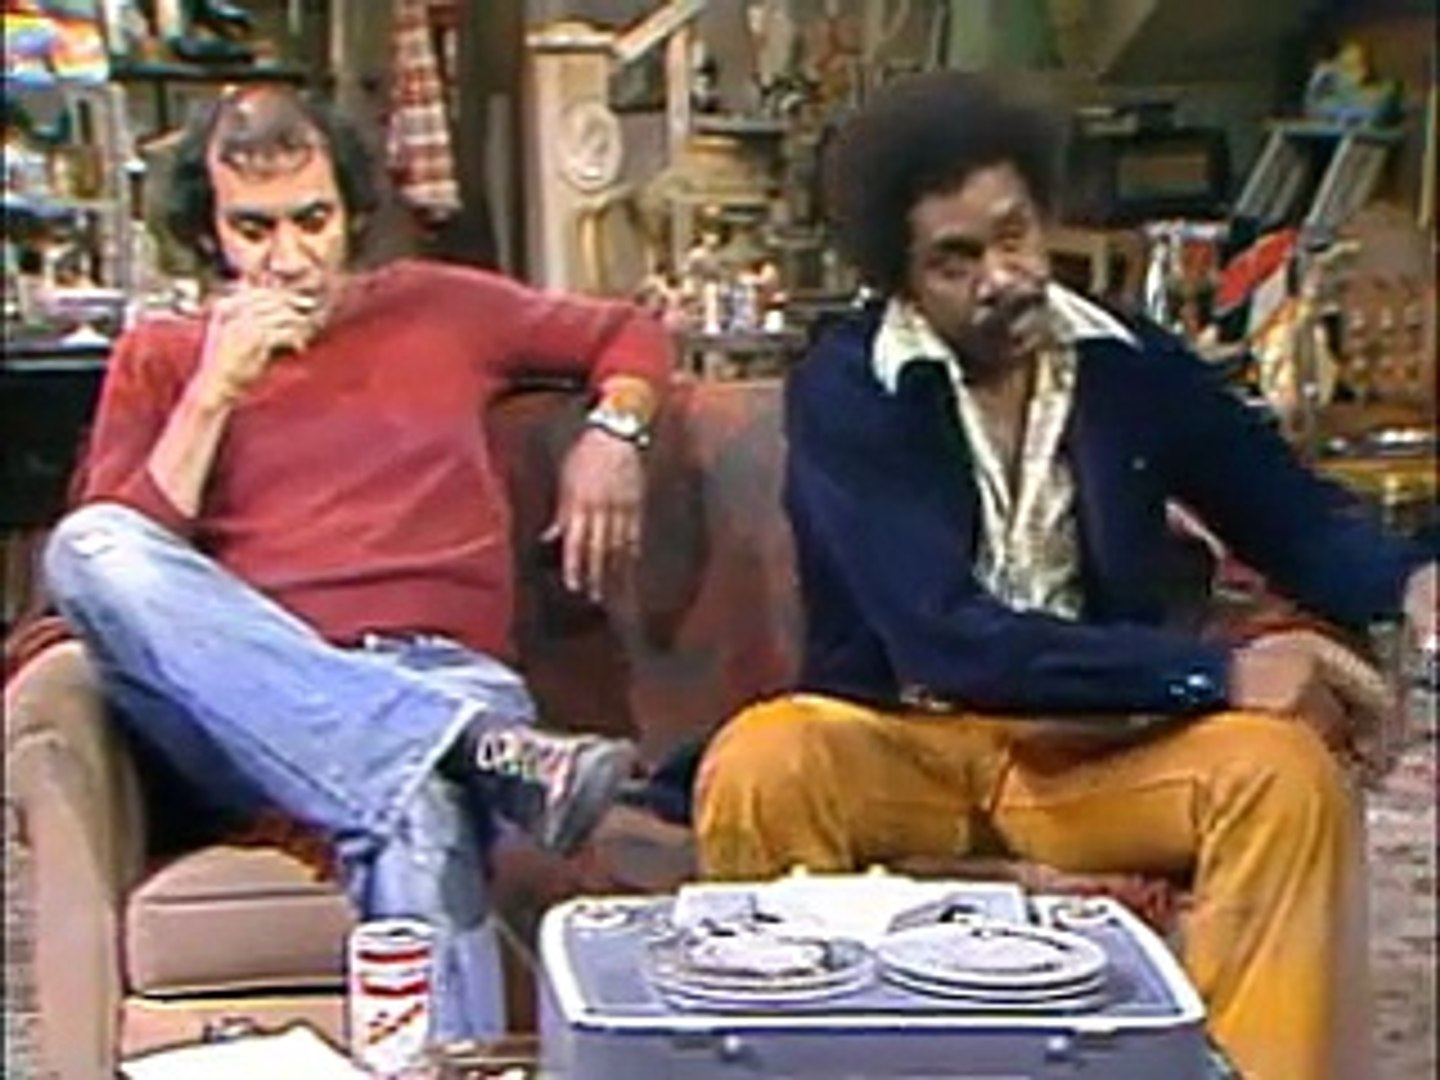 SANFORD AND SON S3E07 Fuentes Fuentes Sanford and Chico